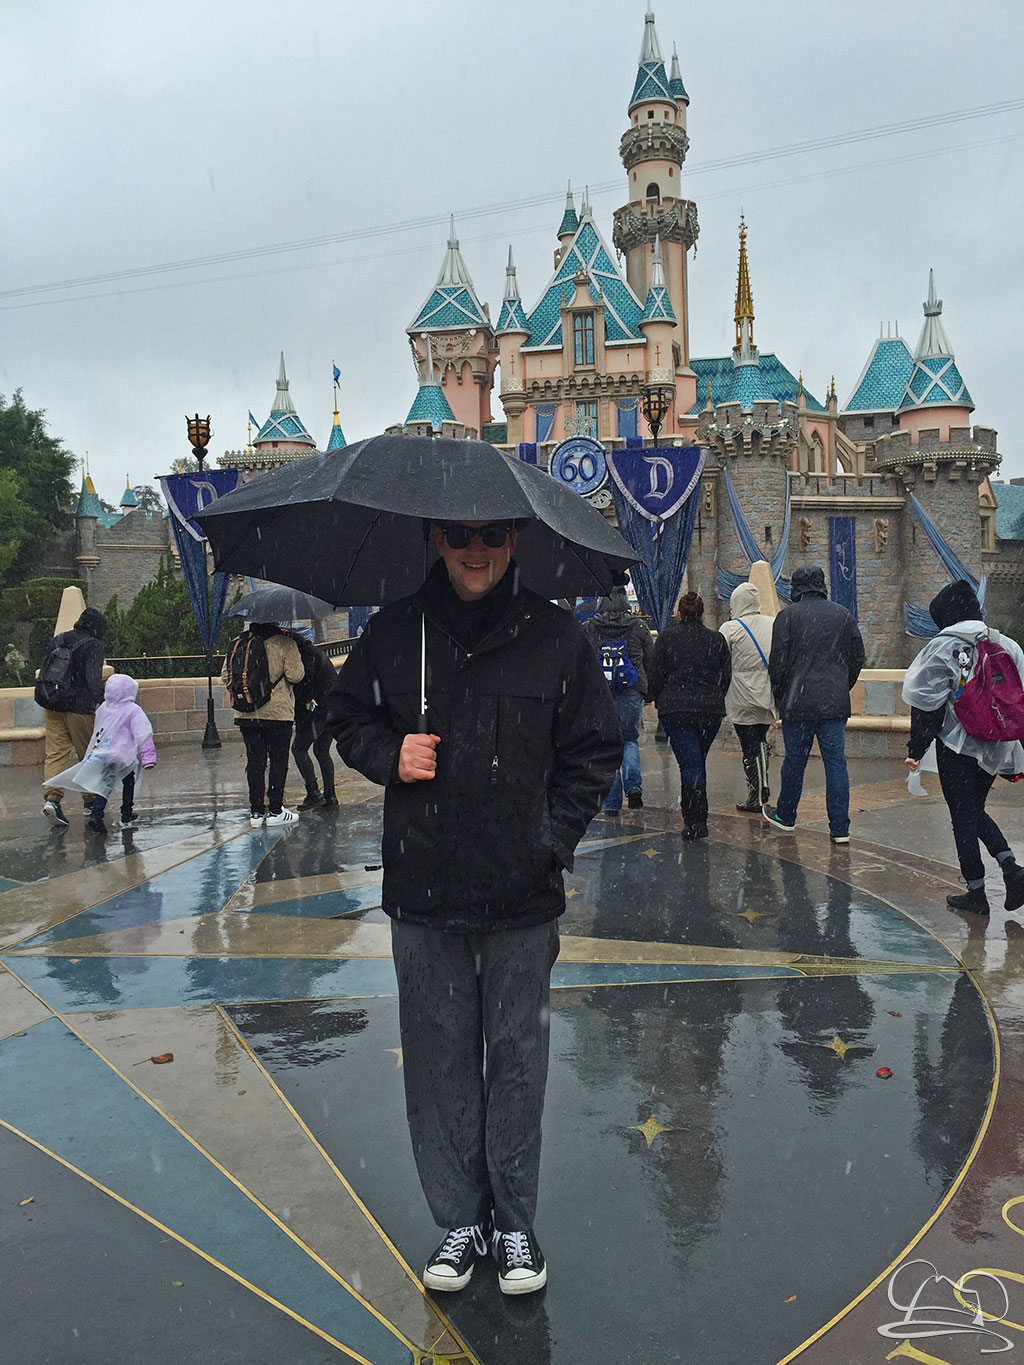 When and When Not To Visit Disneyland